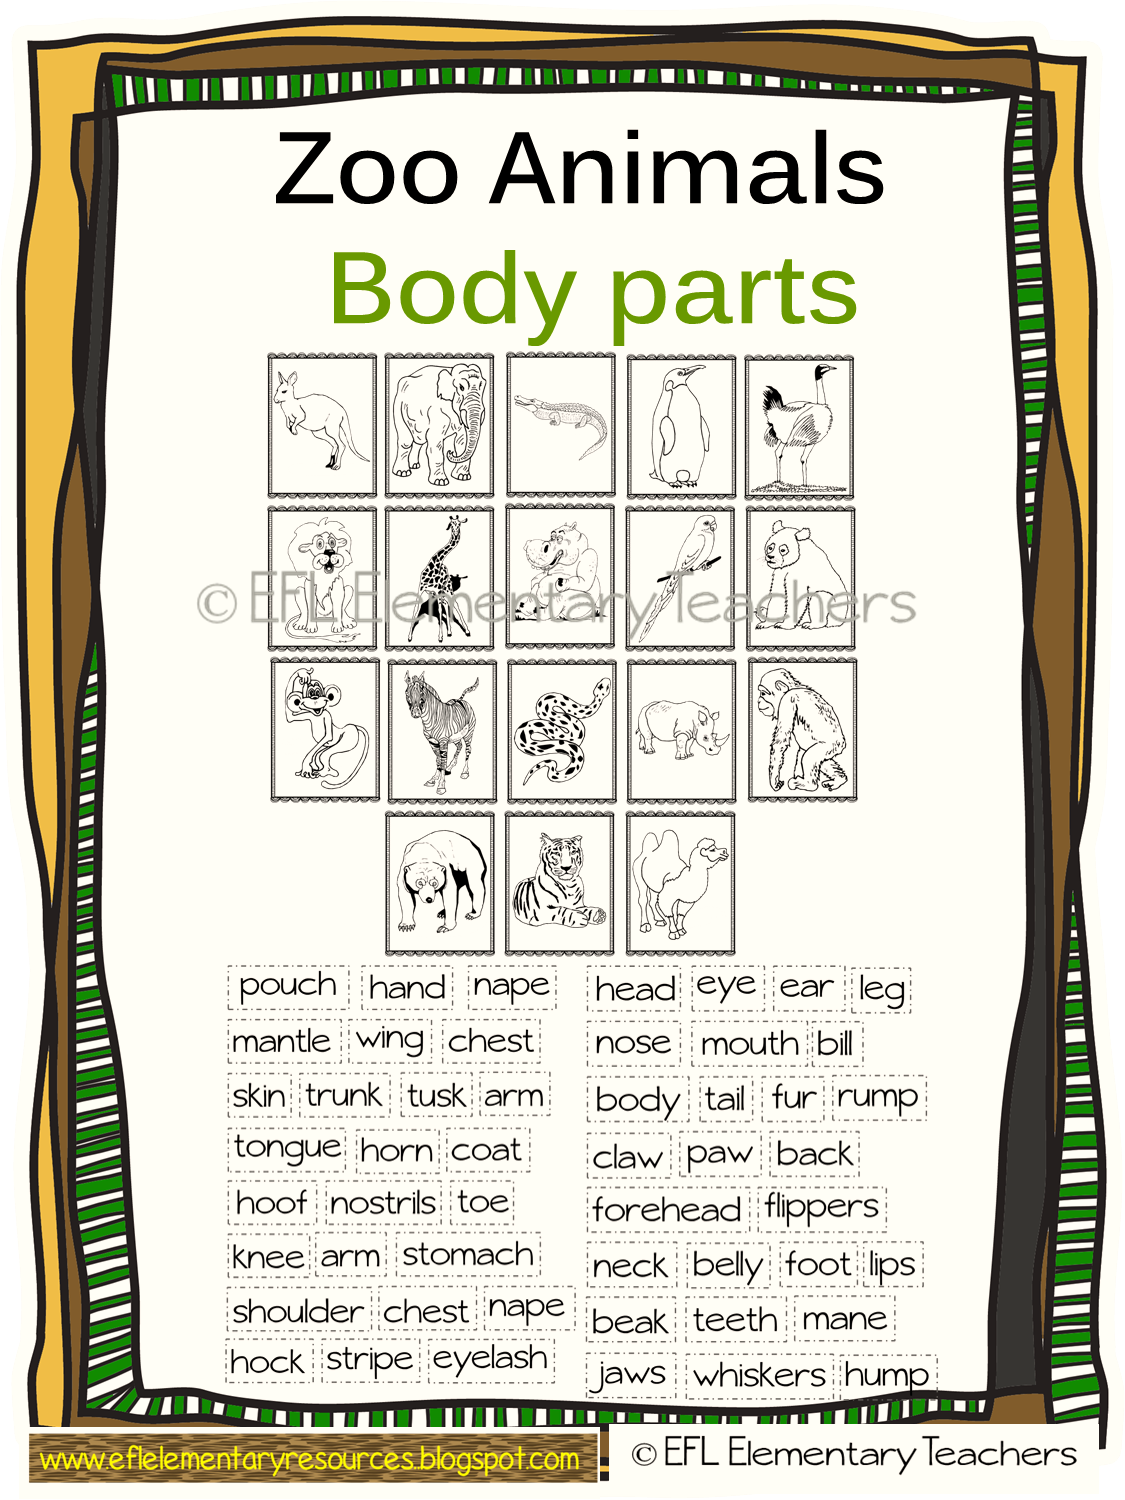 Efl Elementary Teachers Zoo Animals Have A Body